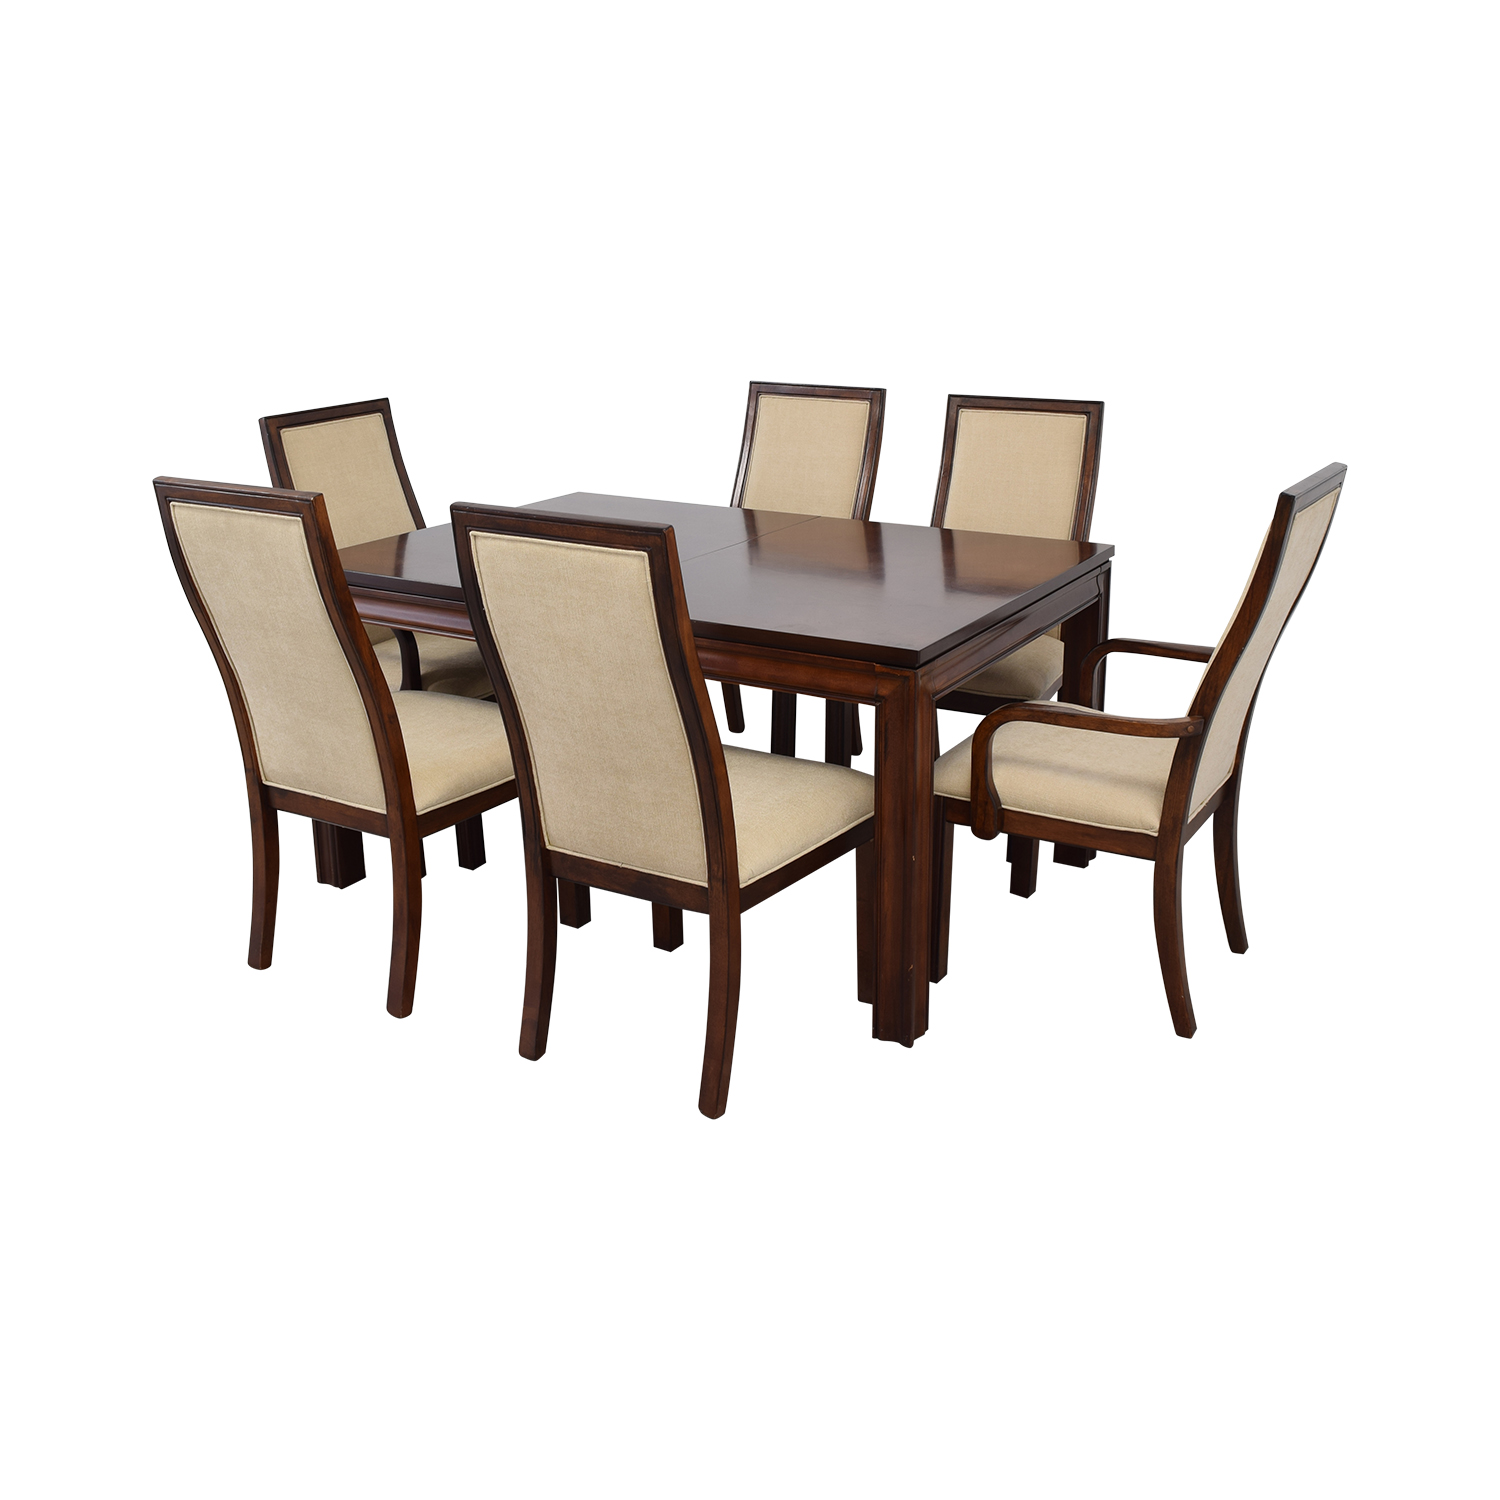 Macy's Macy's Extendable Wood Dining Set cream/brown